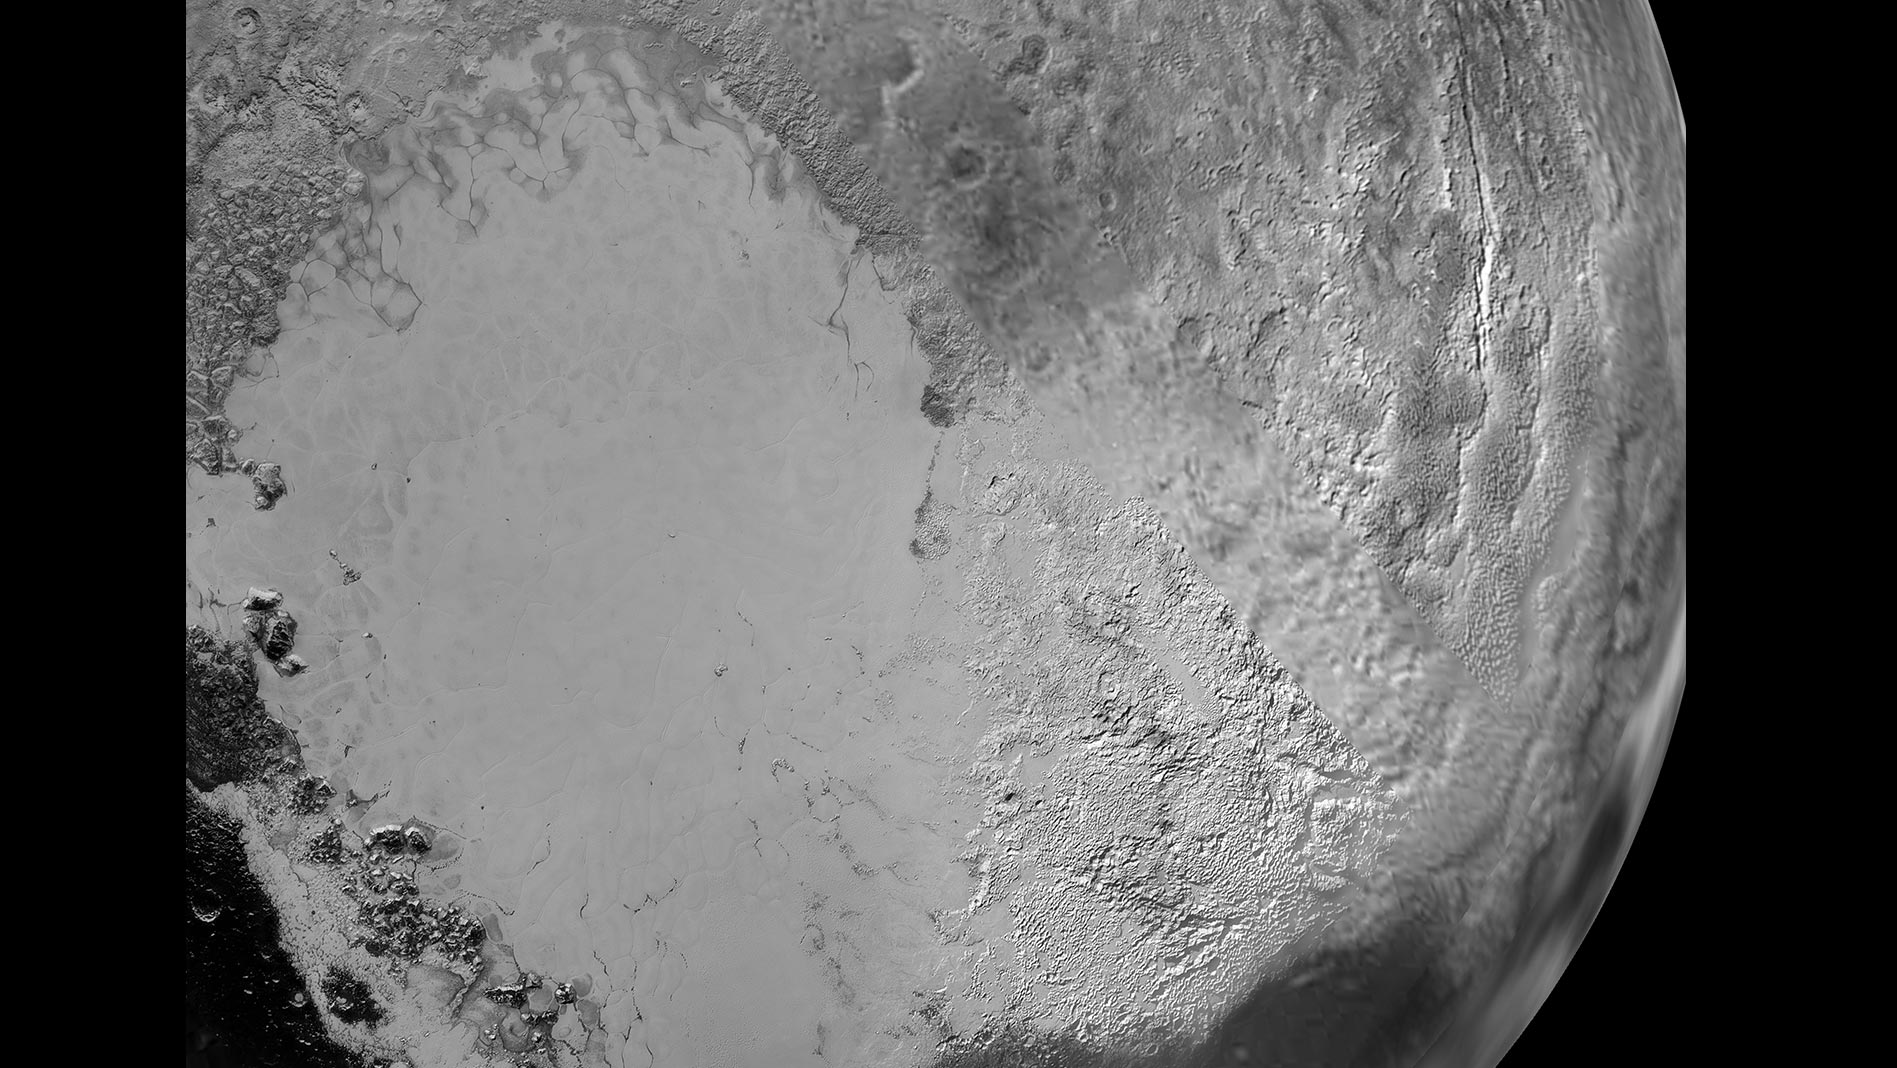 heart-shaped structure on Pluto